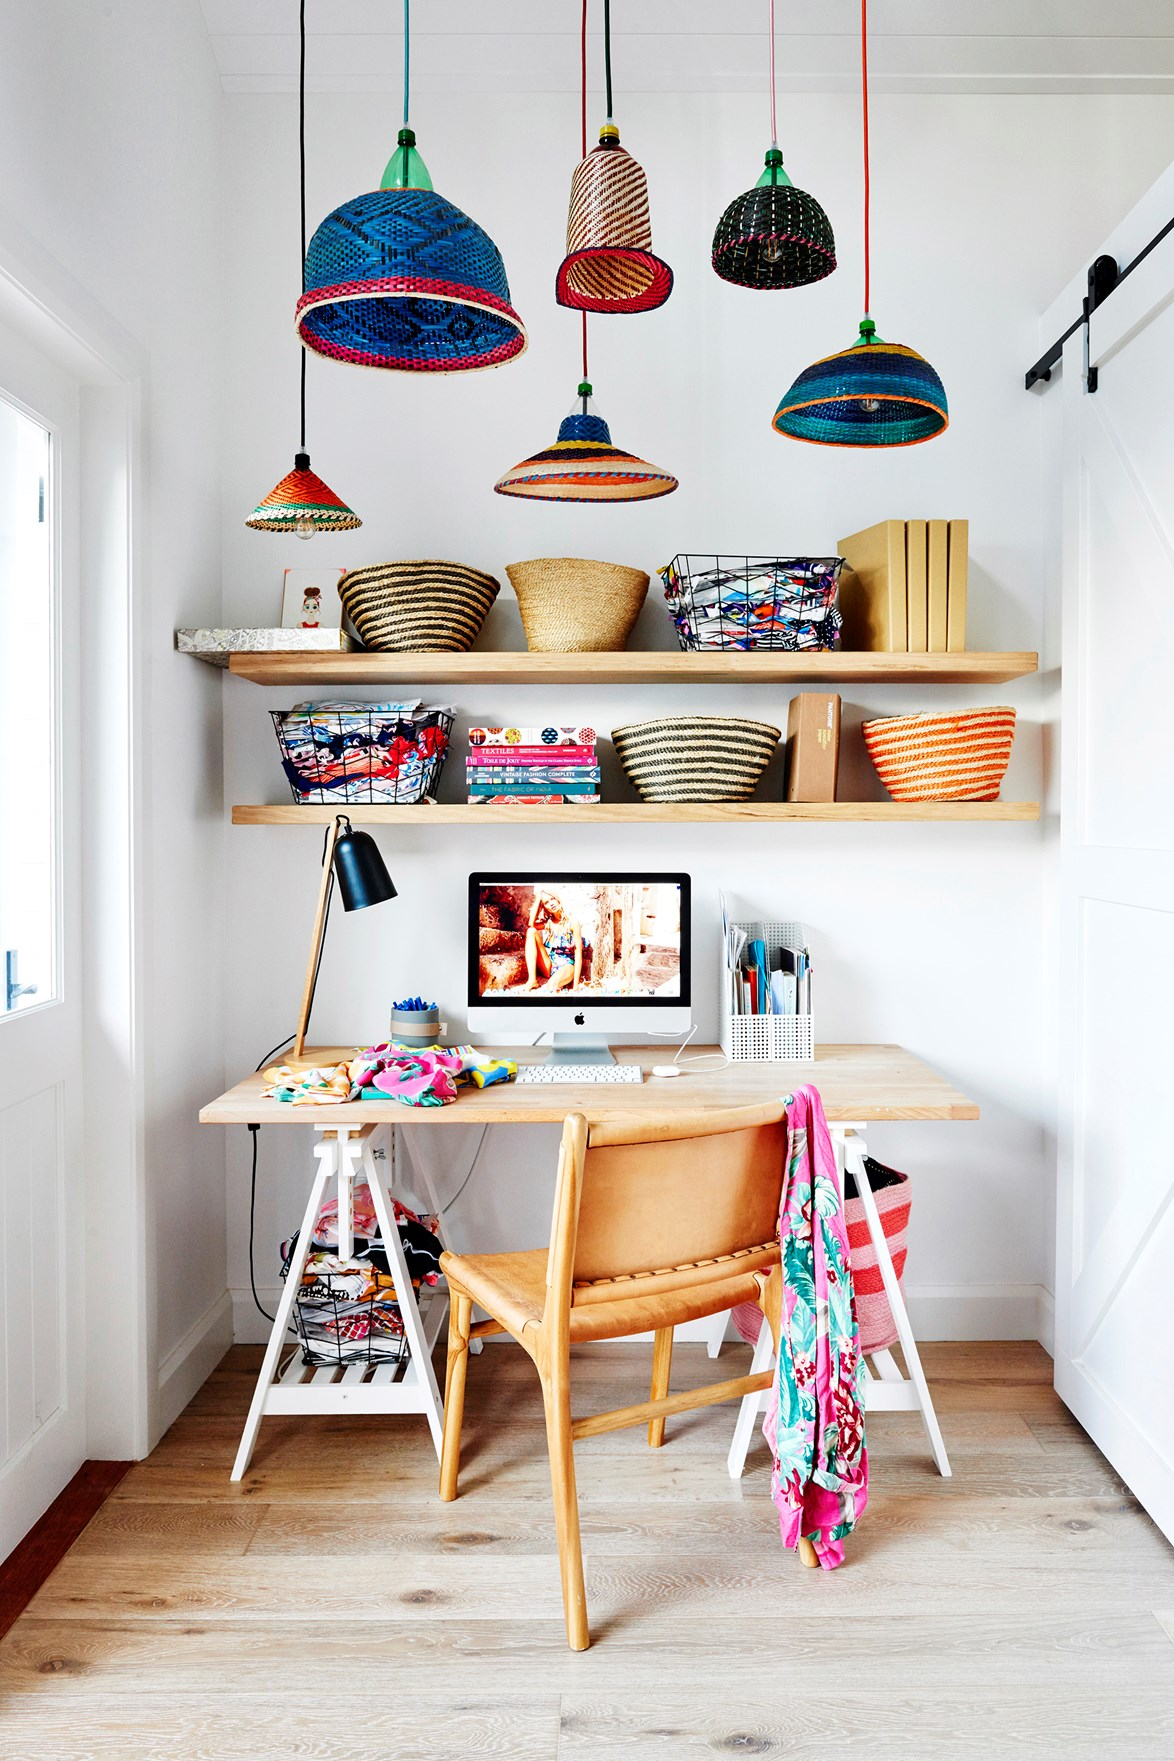 Talk about inspiring! This colourful home office would make working from home an absolute joy. A simple Ikea desk and leather chair from Barnaby Lane are both practical and stylish but the real stars are the custom oak shelving filled with woven baskets and assorted PET lamps from Safari Living.